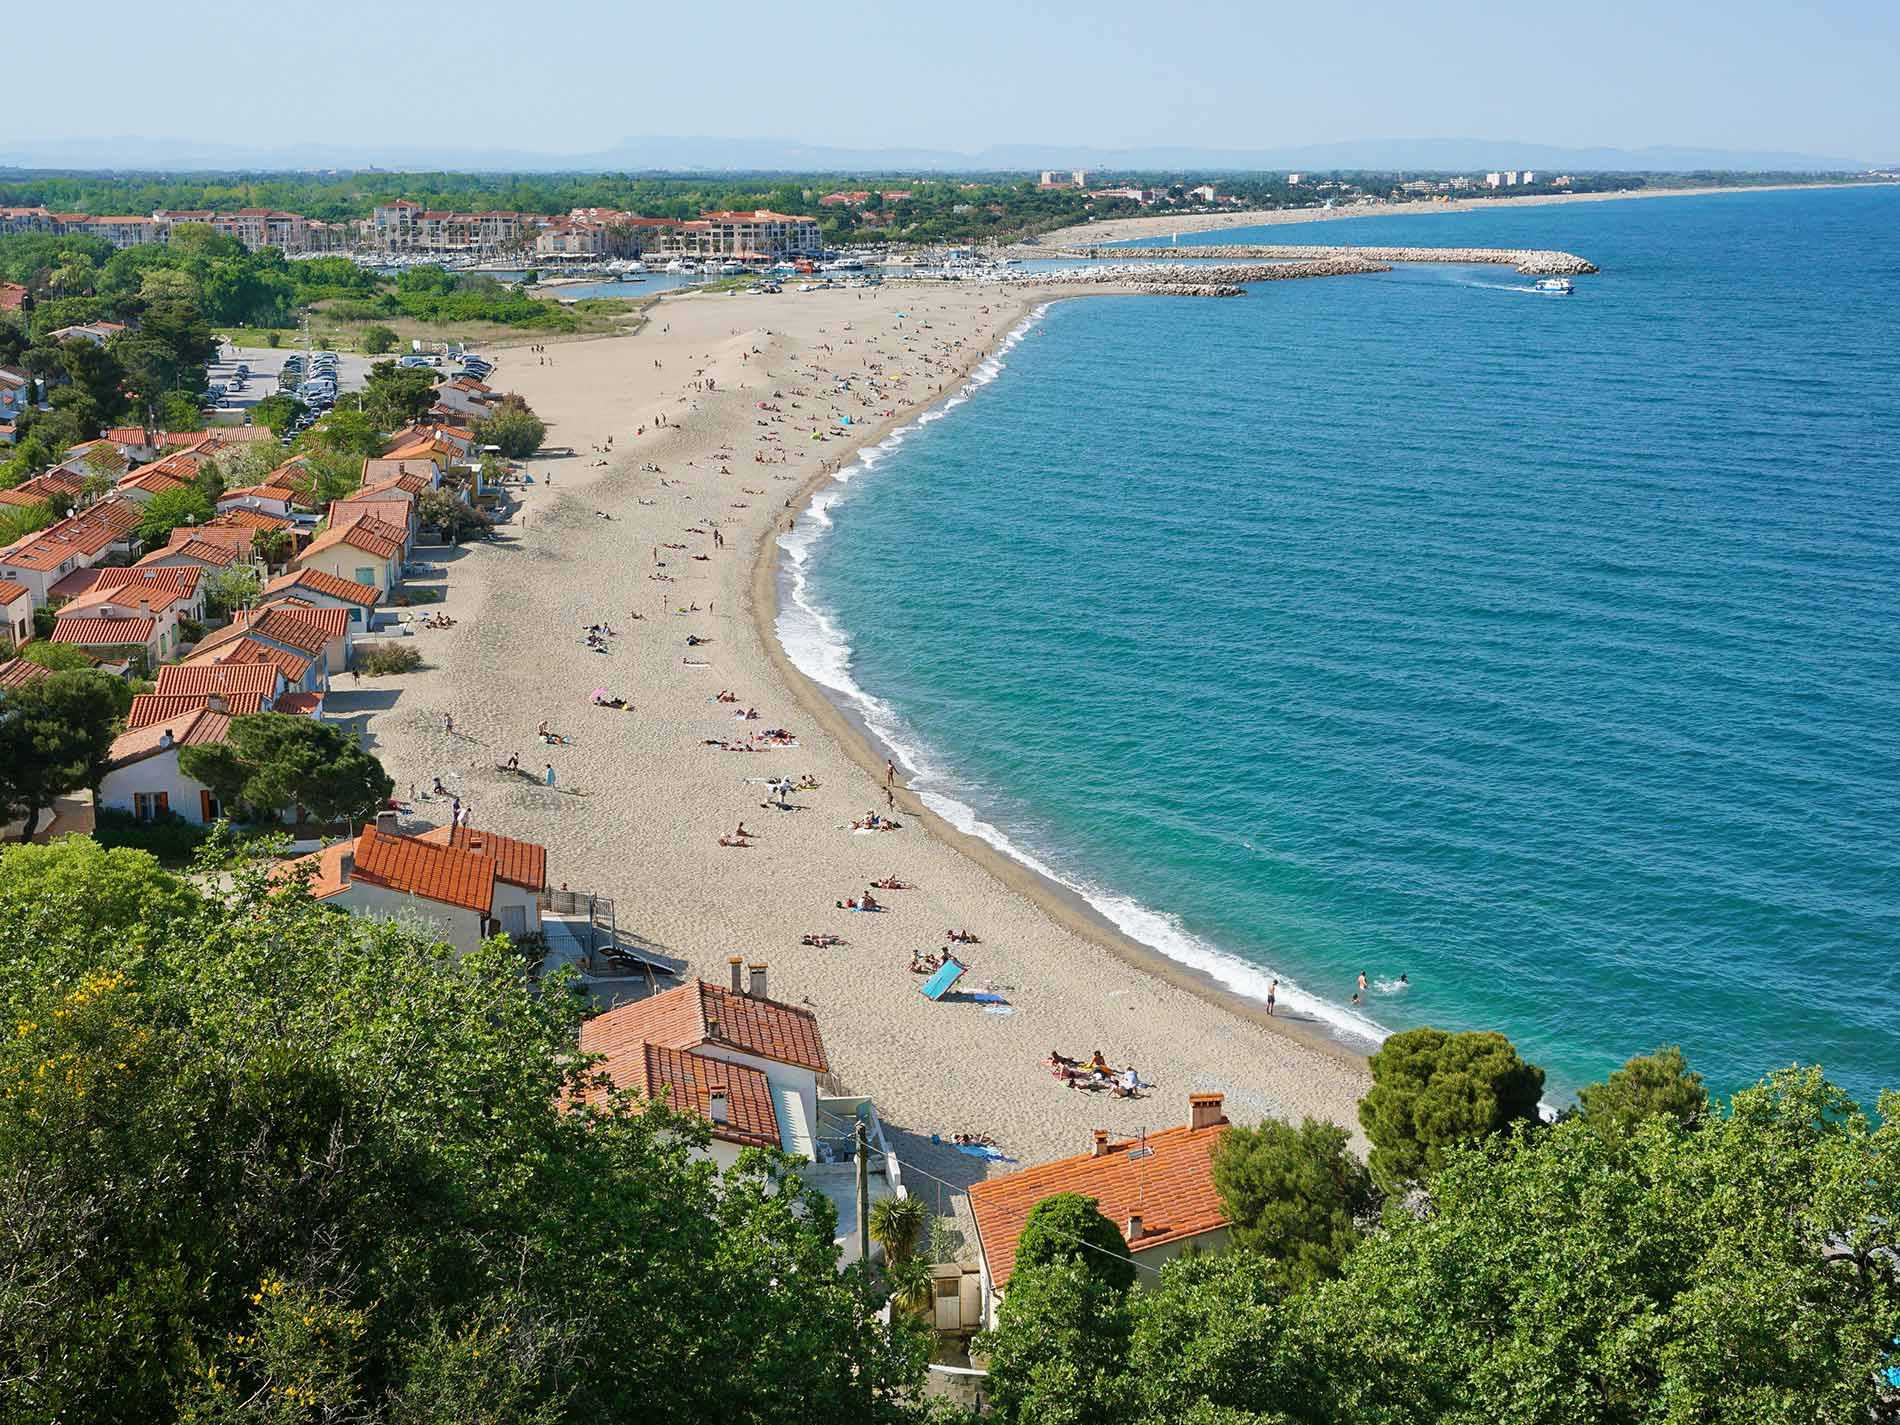 Your camping holiday in Argelès-sur-Mer